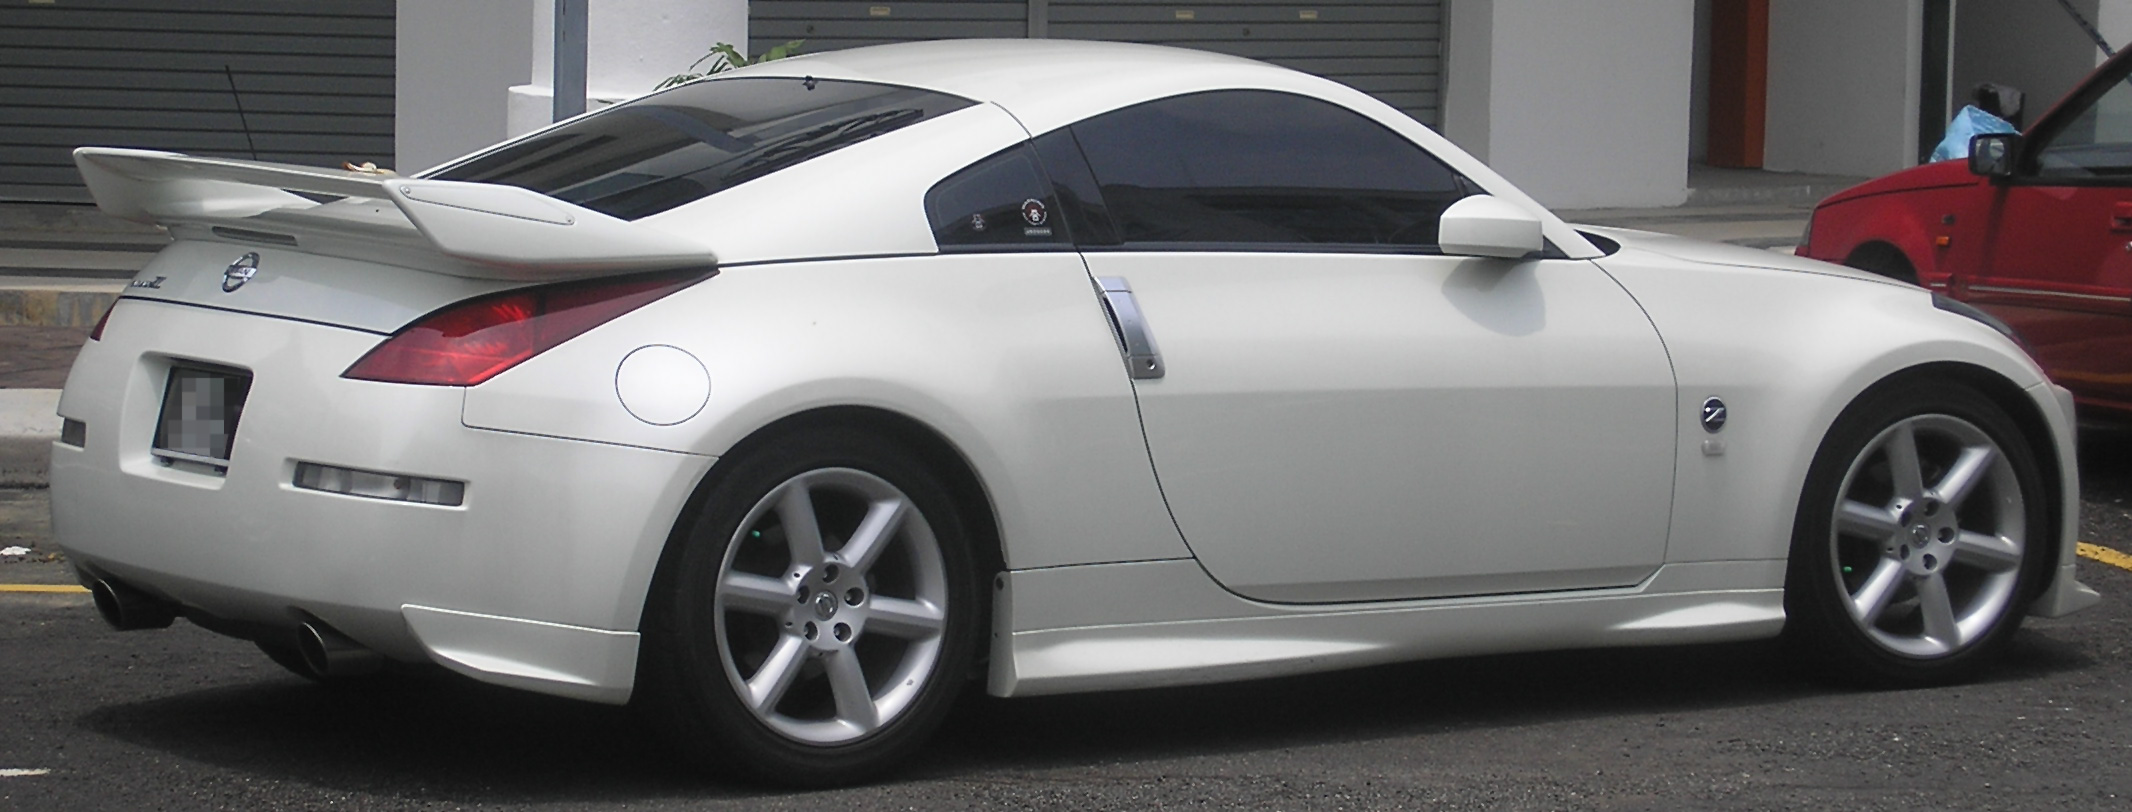 File Nissan 350z First Generation Rear Serdang Jpg Wikimedia Commons